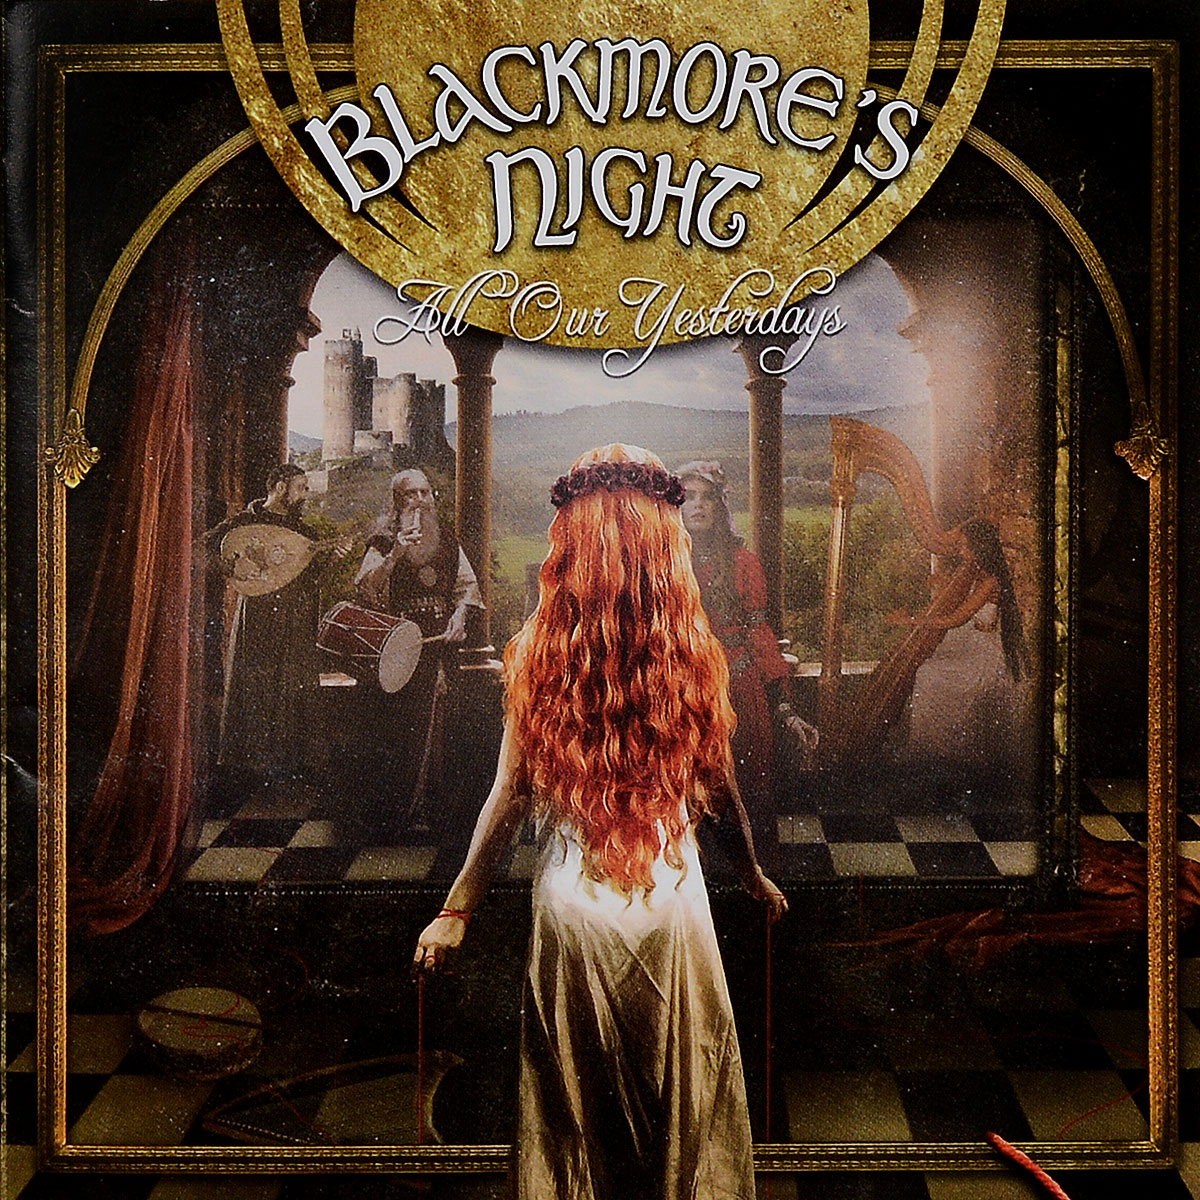 Blackmore's Night Blackmore's Night. All Our Yesterdays ade 2018 909 collabs all night